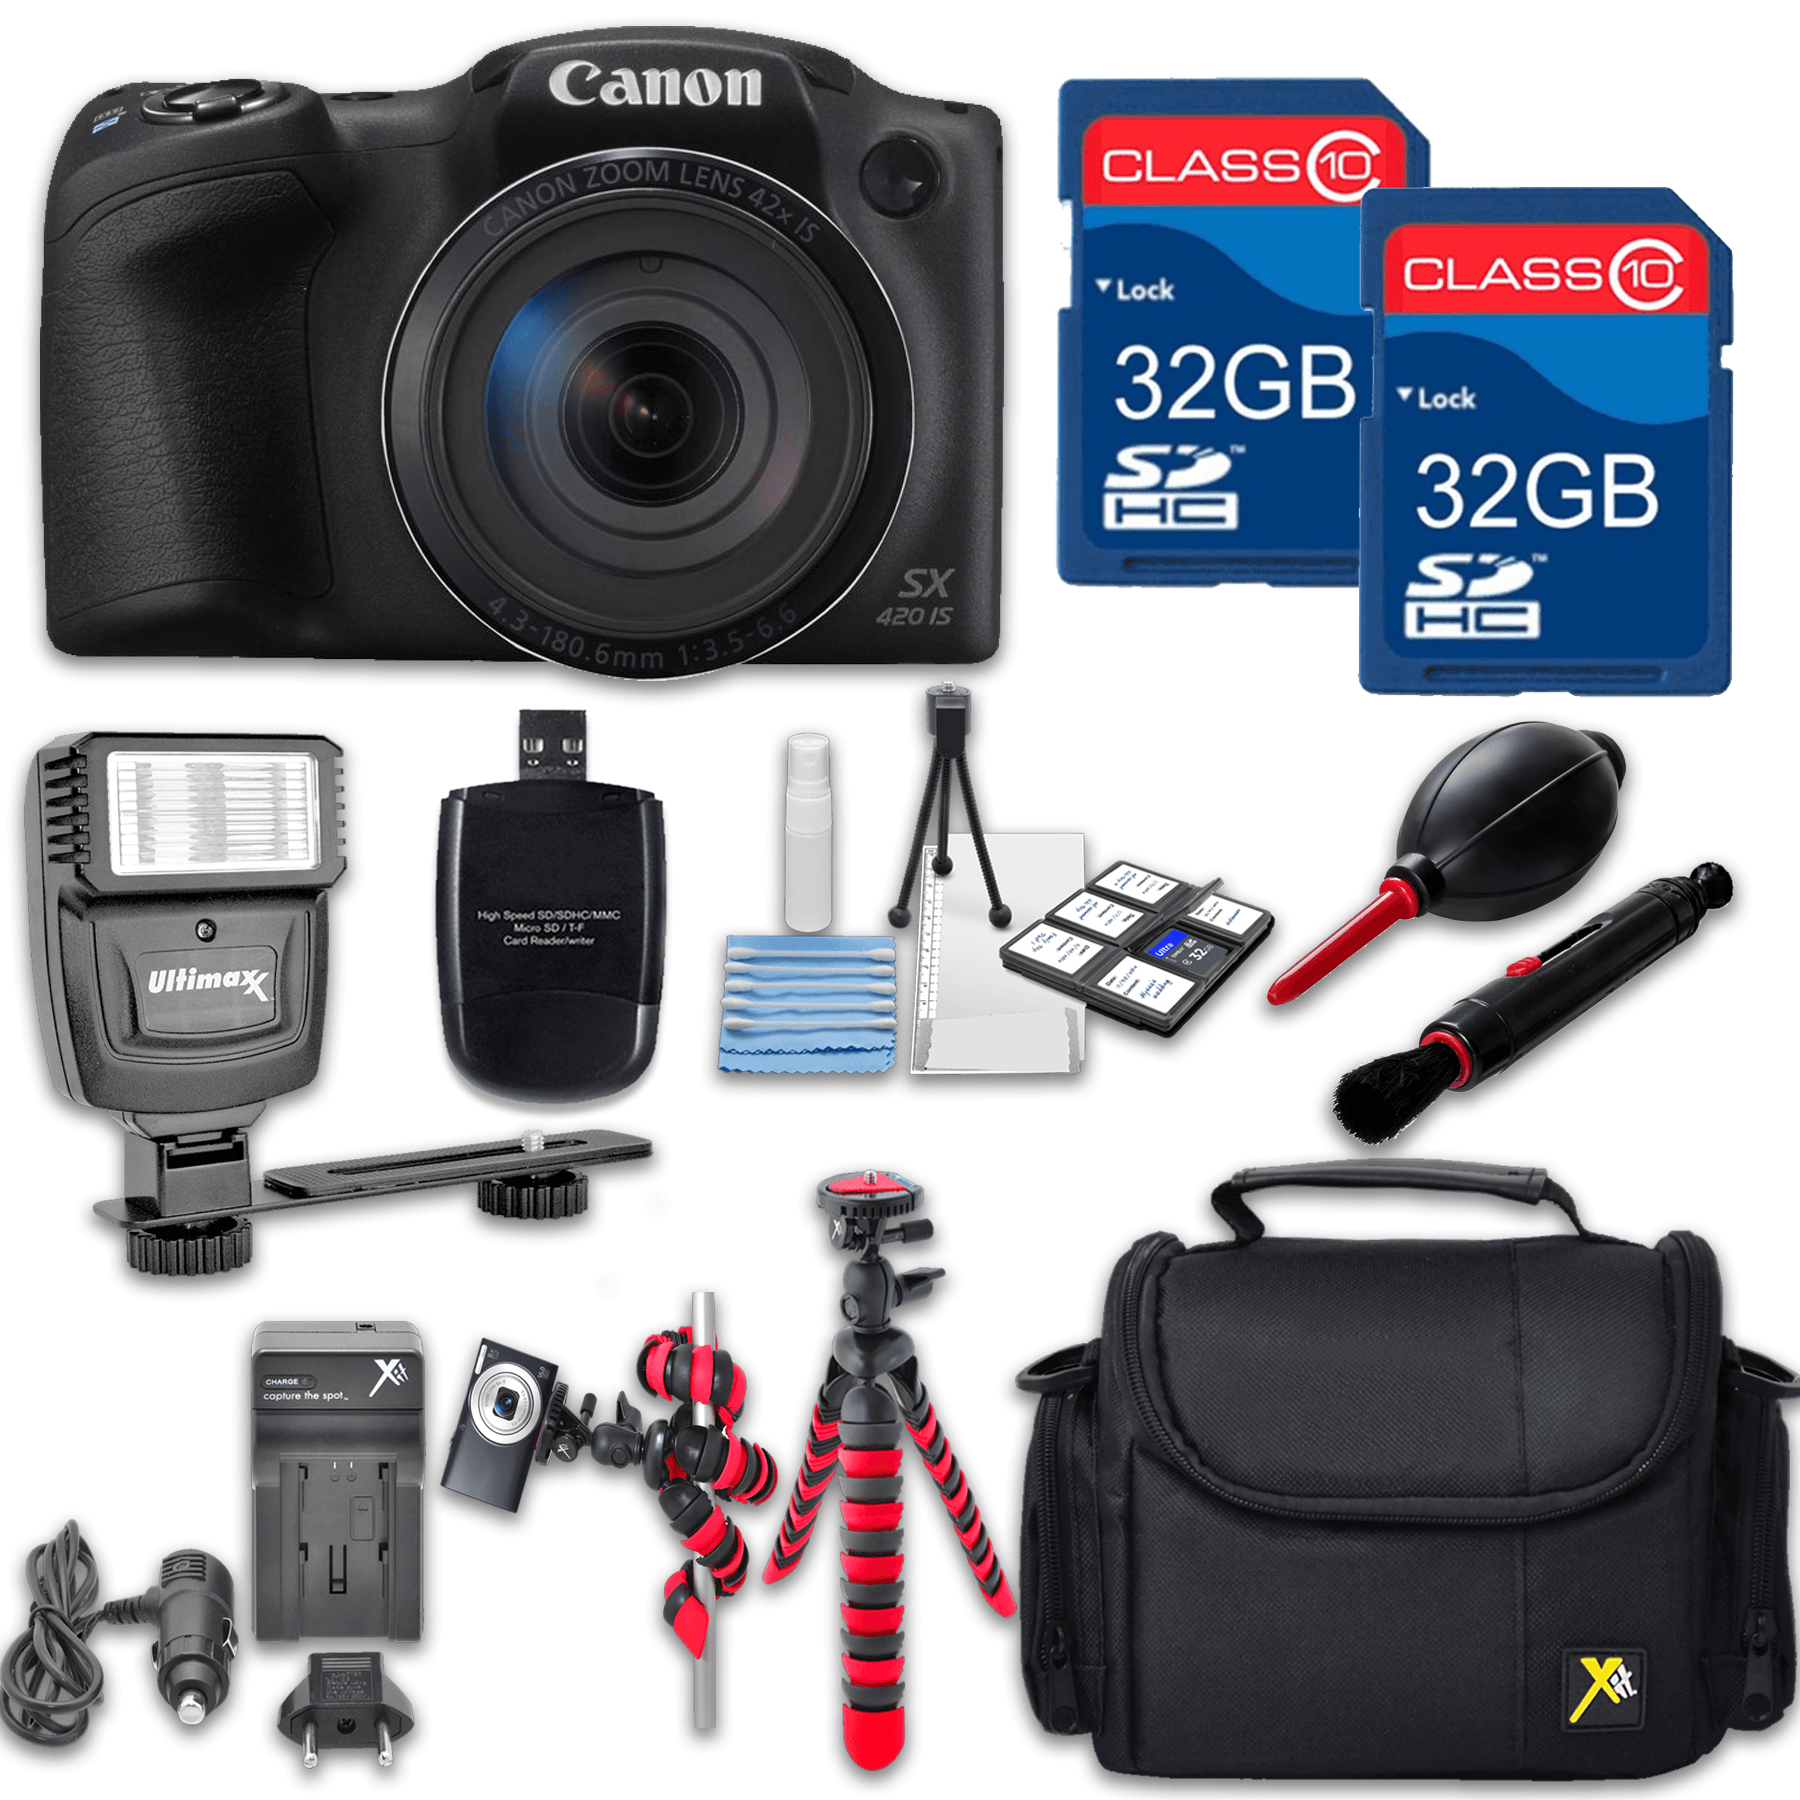 Canon Powershot SX420 (Black) HS Point and Shoot Digital Camera, W/ Case + 64GB Memory + Flash + Tripod + Case + Cleaning Kit + More